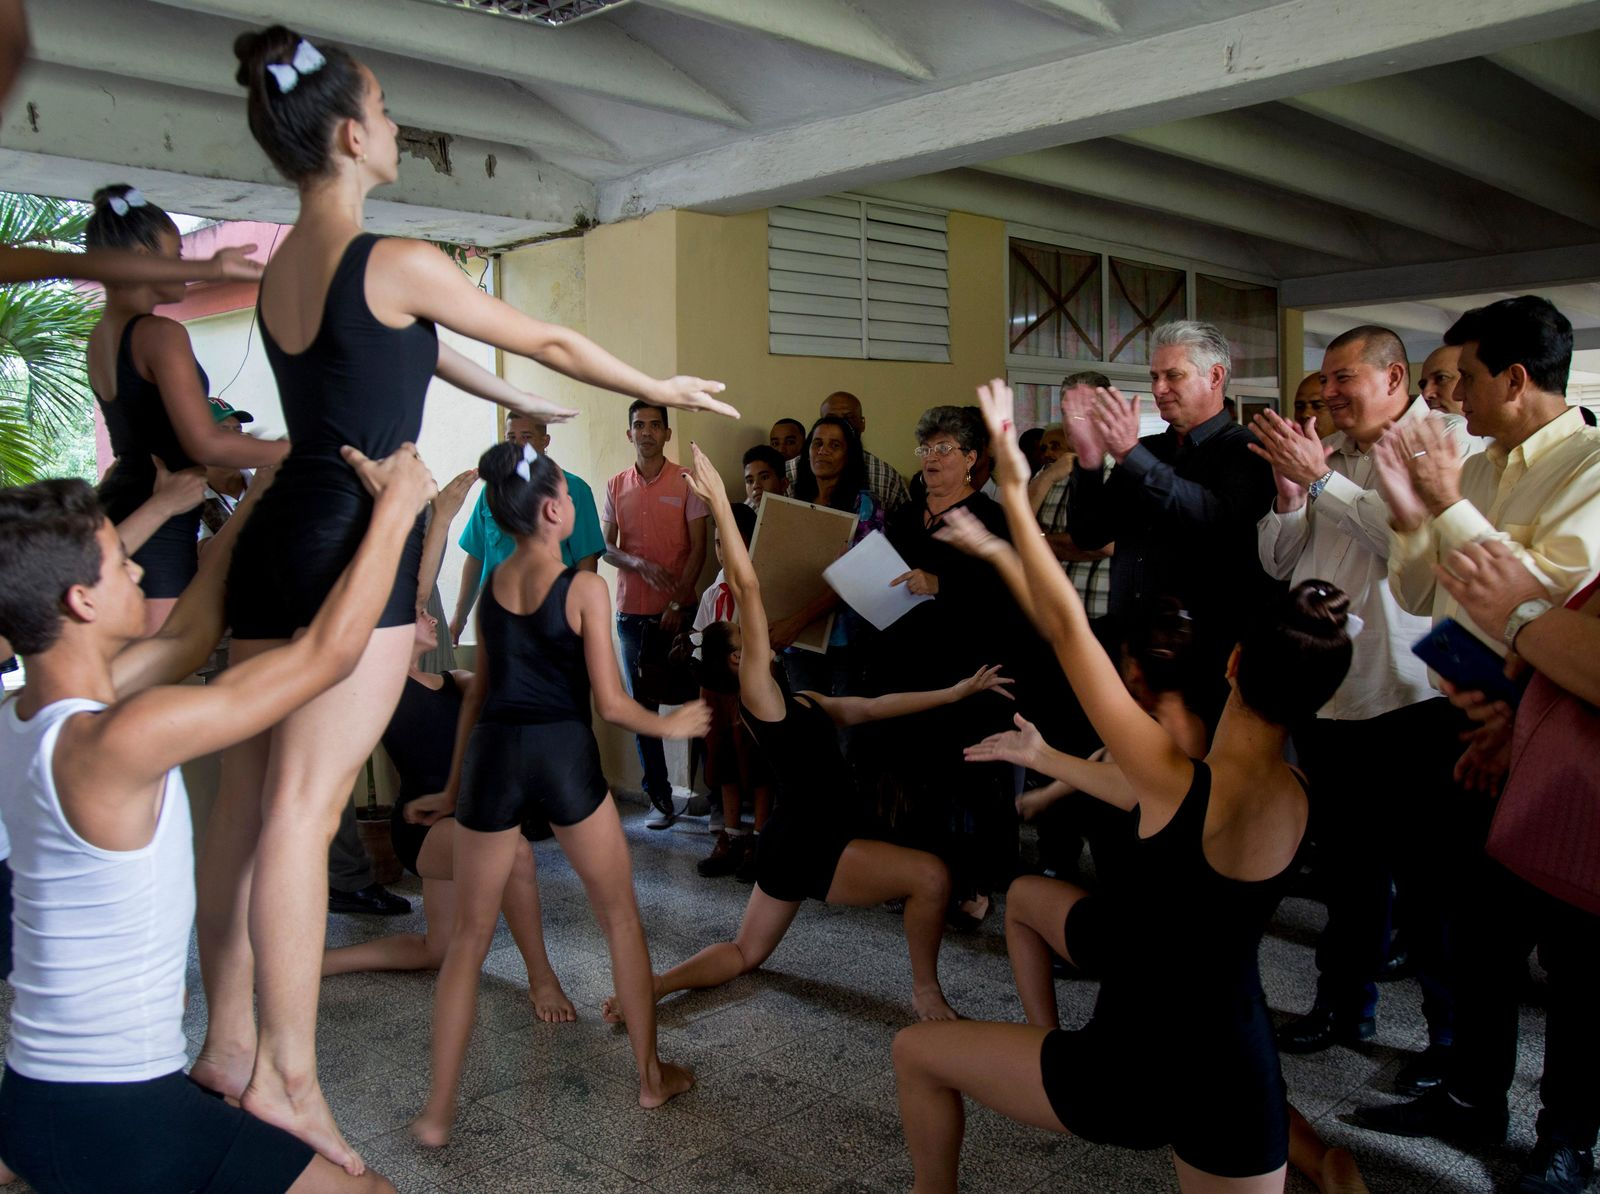 Cuba's President Miguel Diaz-Canel, third right, attends a dance demonstration at an art school during a tour in Las Tunas, Cuba, Thursday, Jan. 16, 2020. (AP Photo / Ismael Francisco)